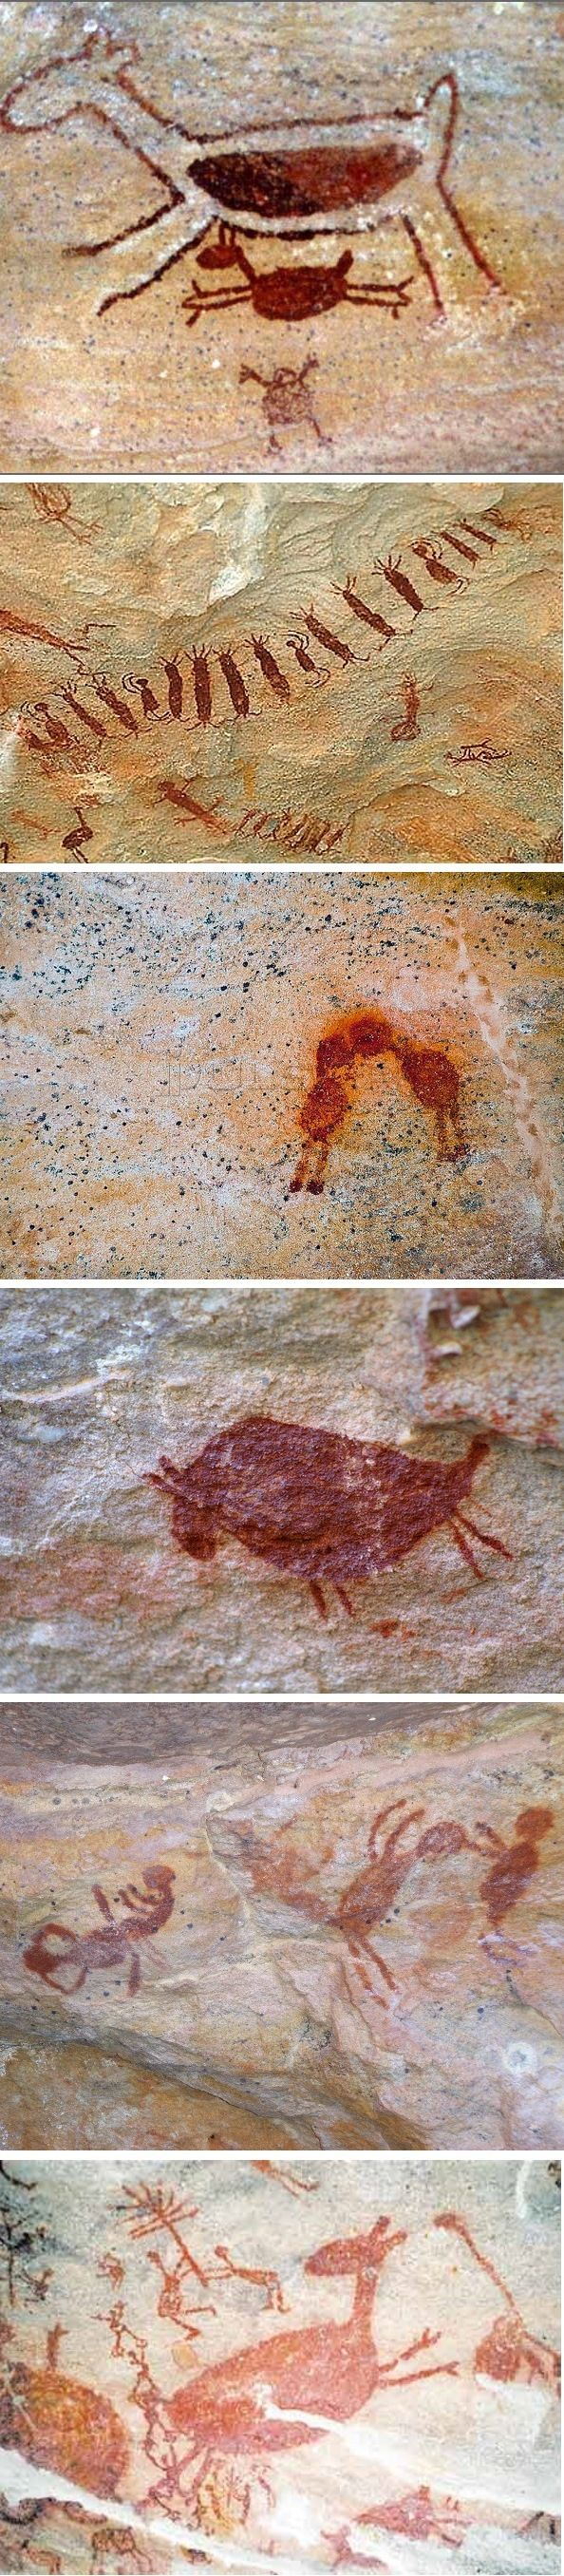 "The oldest reliably dated rock art in the Americas is known as the ""Horny Little Man."" It is petroglyph depicting a stick figure with an oversized phallus and carved [painted?] in Lapa do Santo, a cave in central-eastern Brazil and dates from 12,000 to 9,000 years ago. Serra da Capivara National Park, a UNESCO World Heritage Site, Piauí."